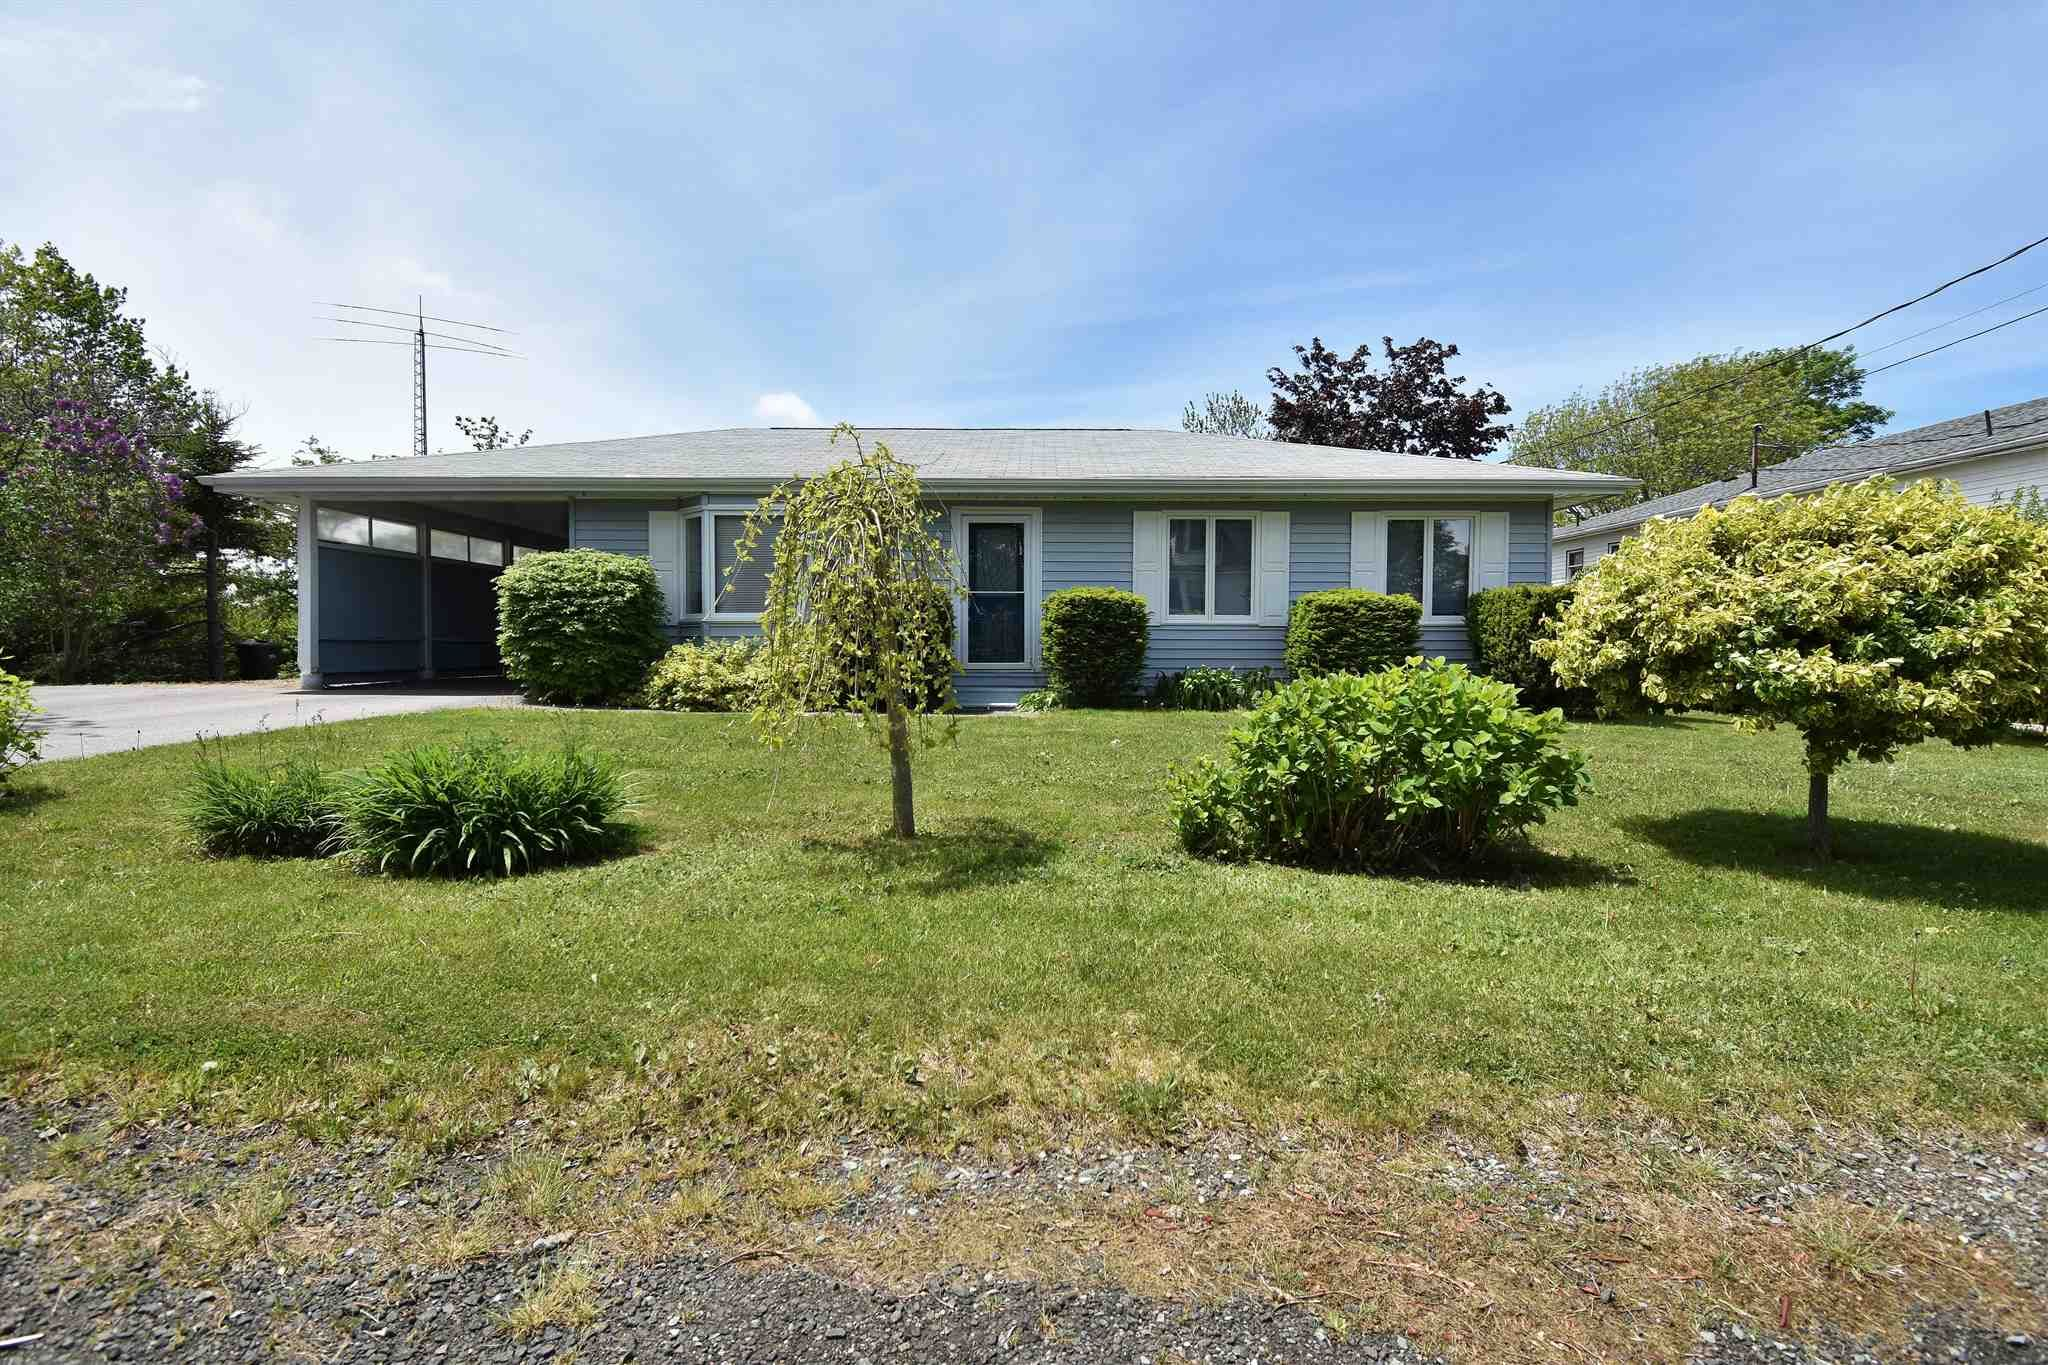 Main Photo: 57 FIRST Avenue in Digby: 401-Digby County Residential for sale (Annapolis Valley)  : MLS®# 202113712